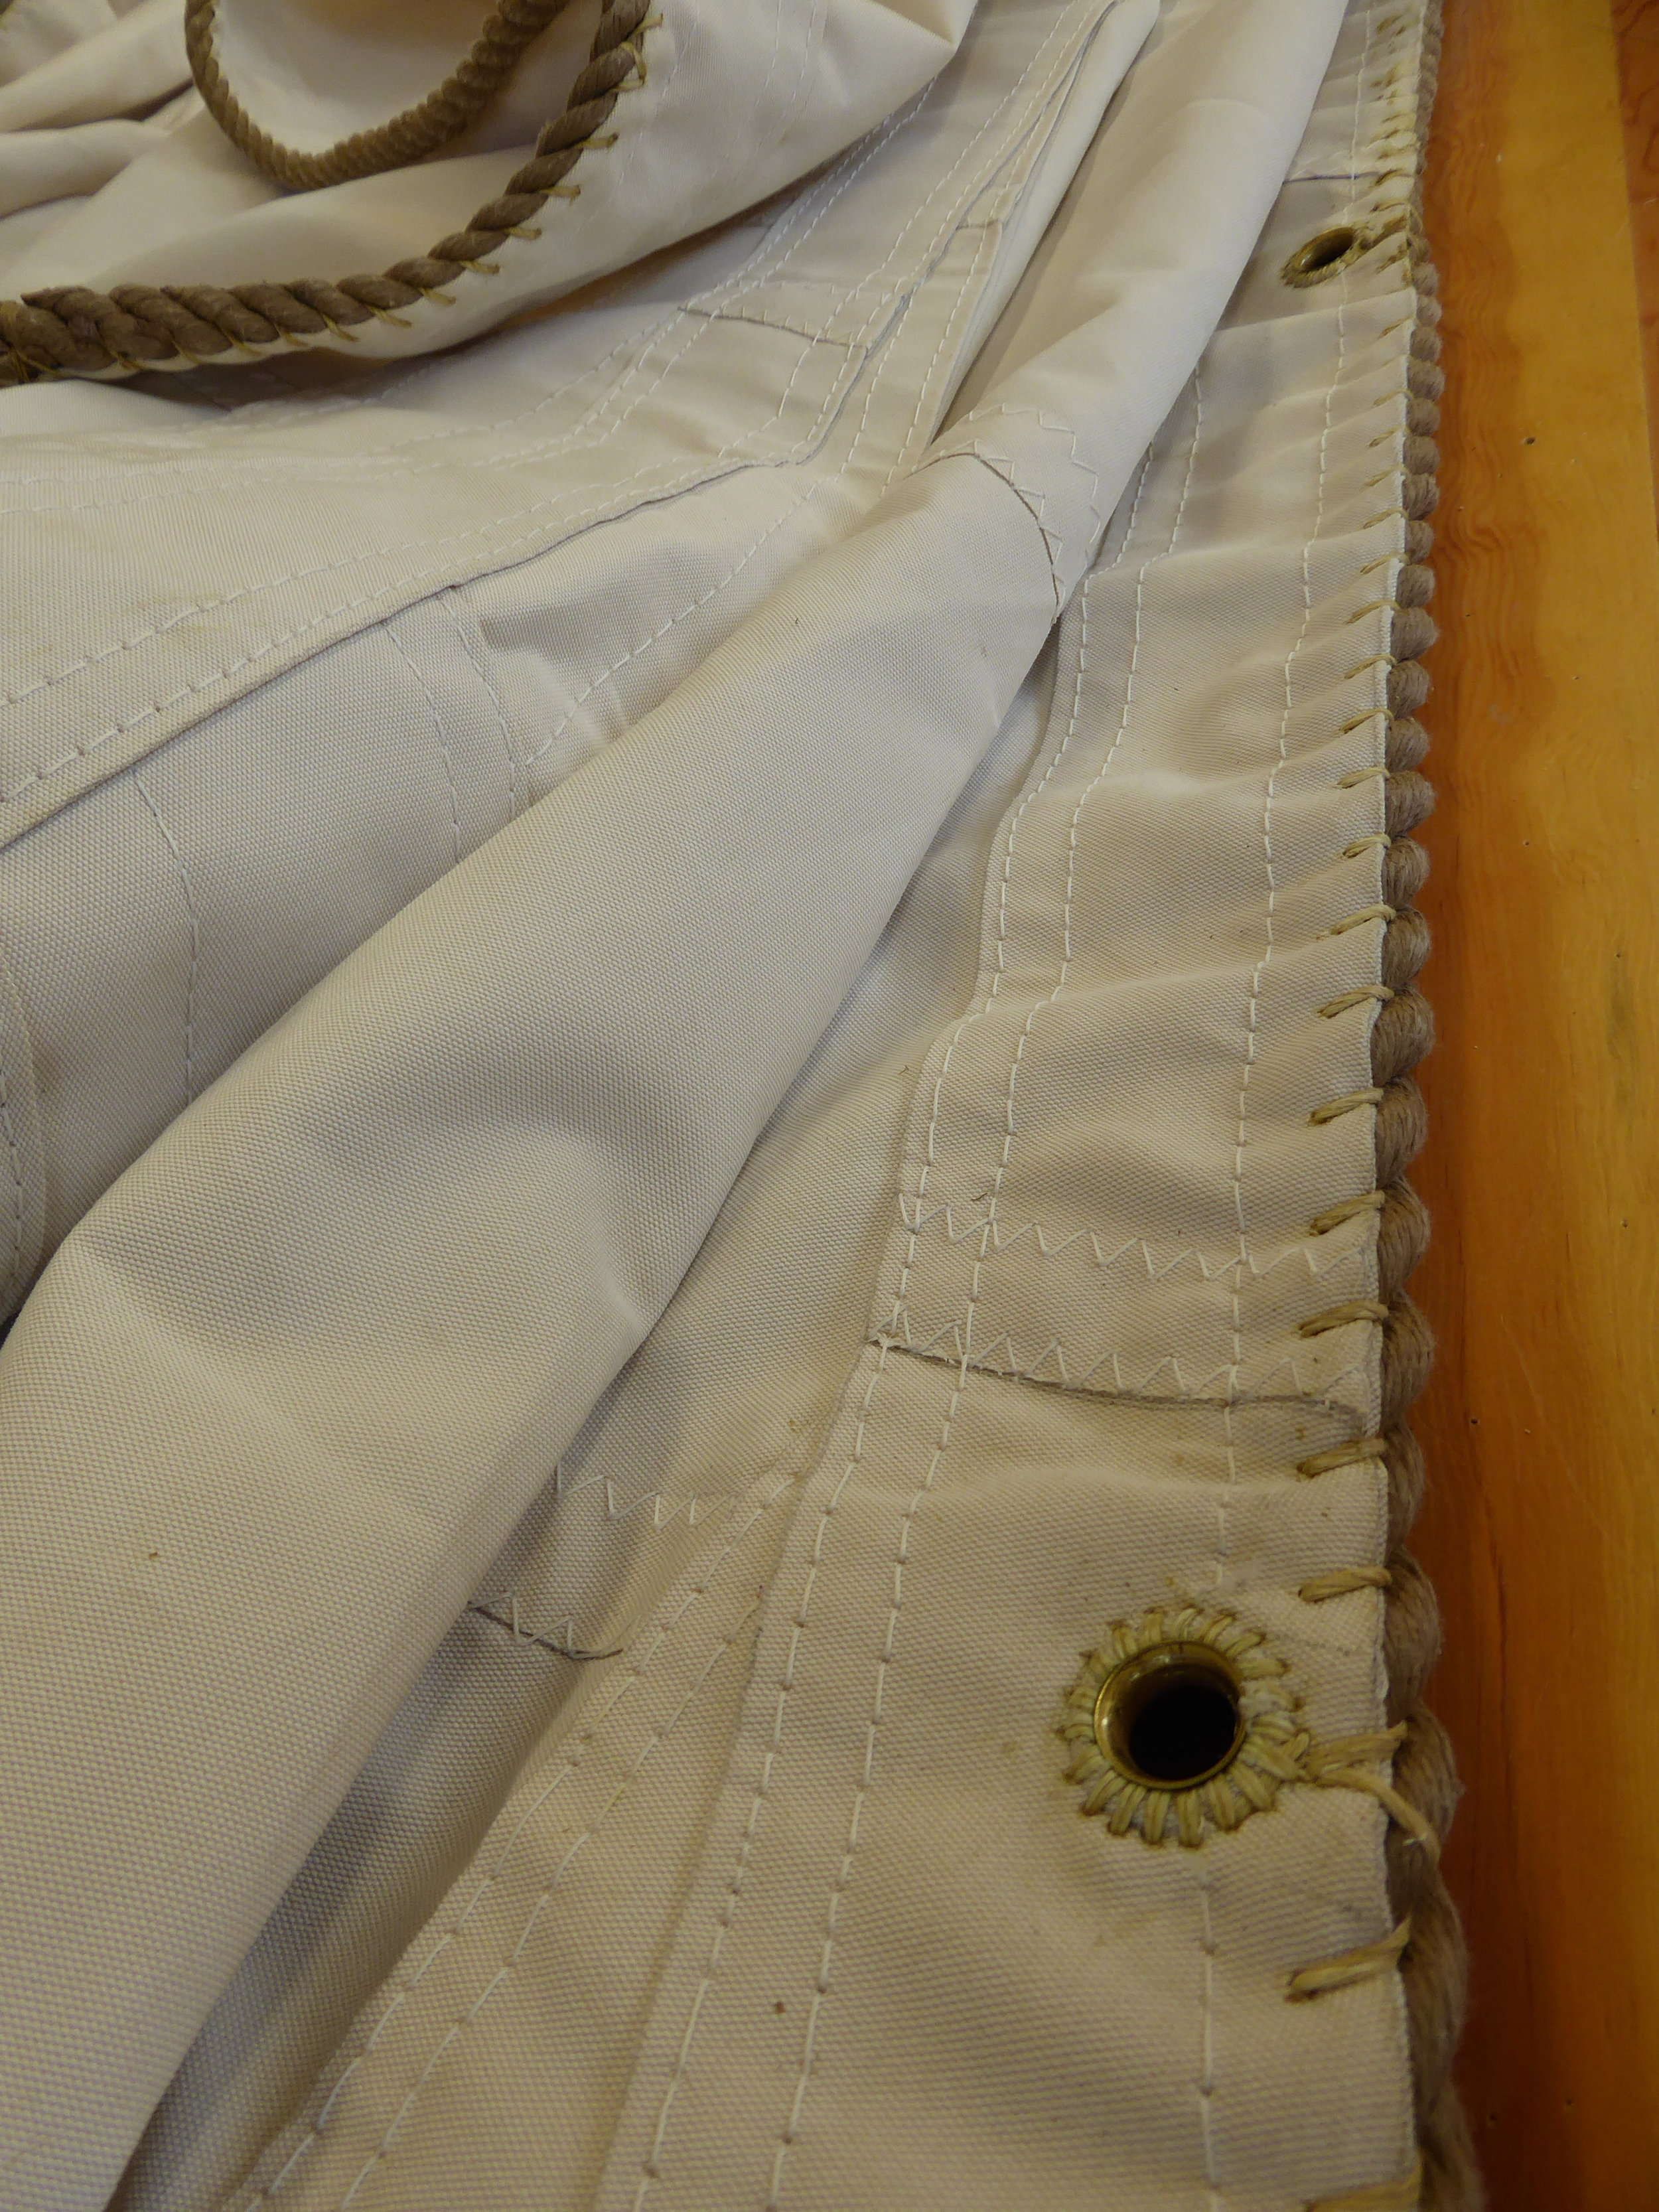 Close-ups of hand sewn foot grommets by Traditional Rigging Co., the maker of Edna Lockwood's new sails.